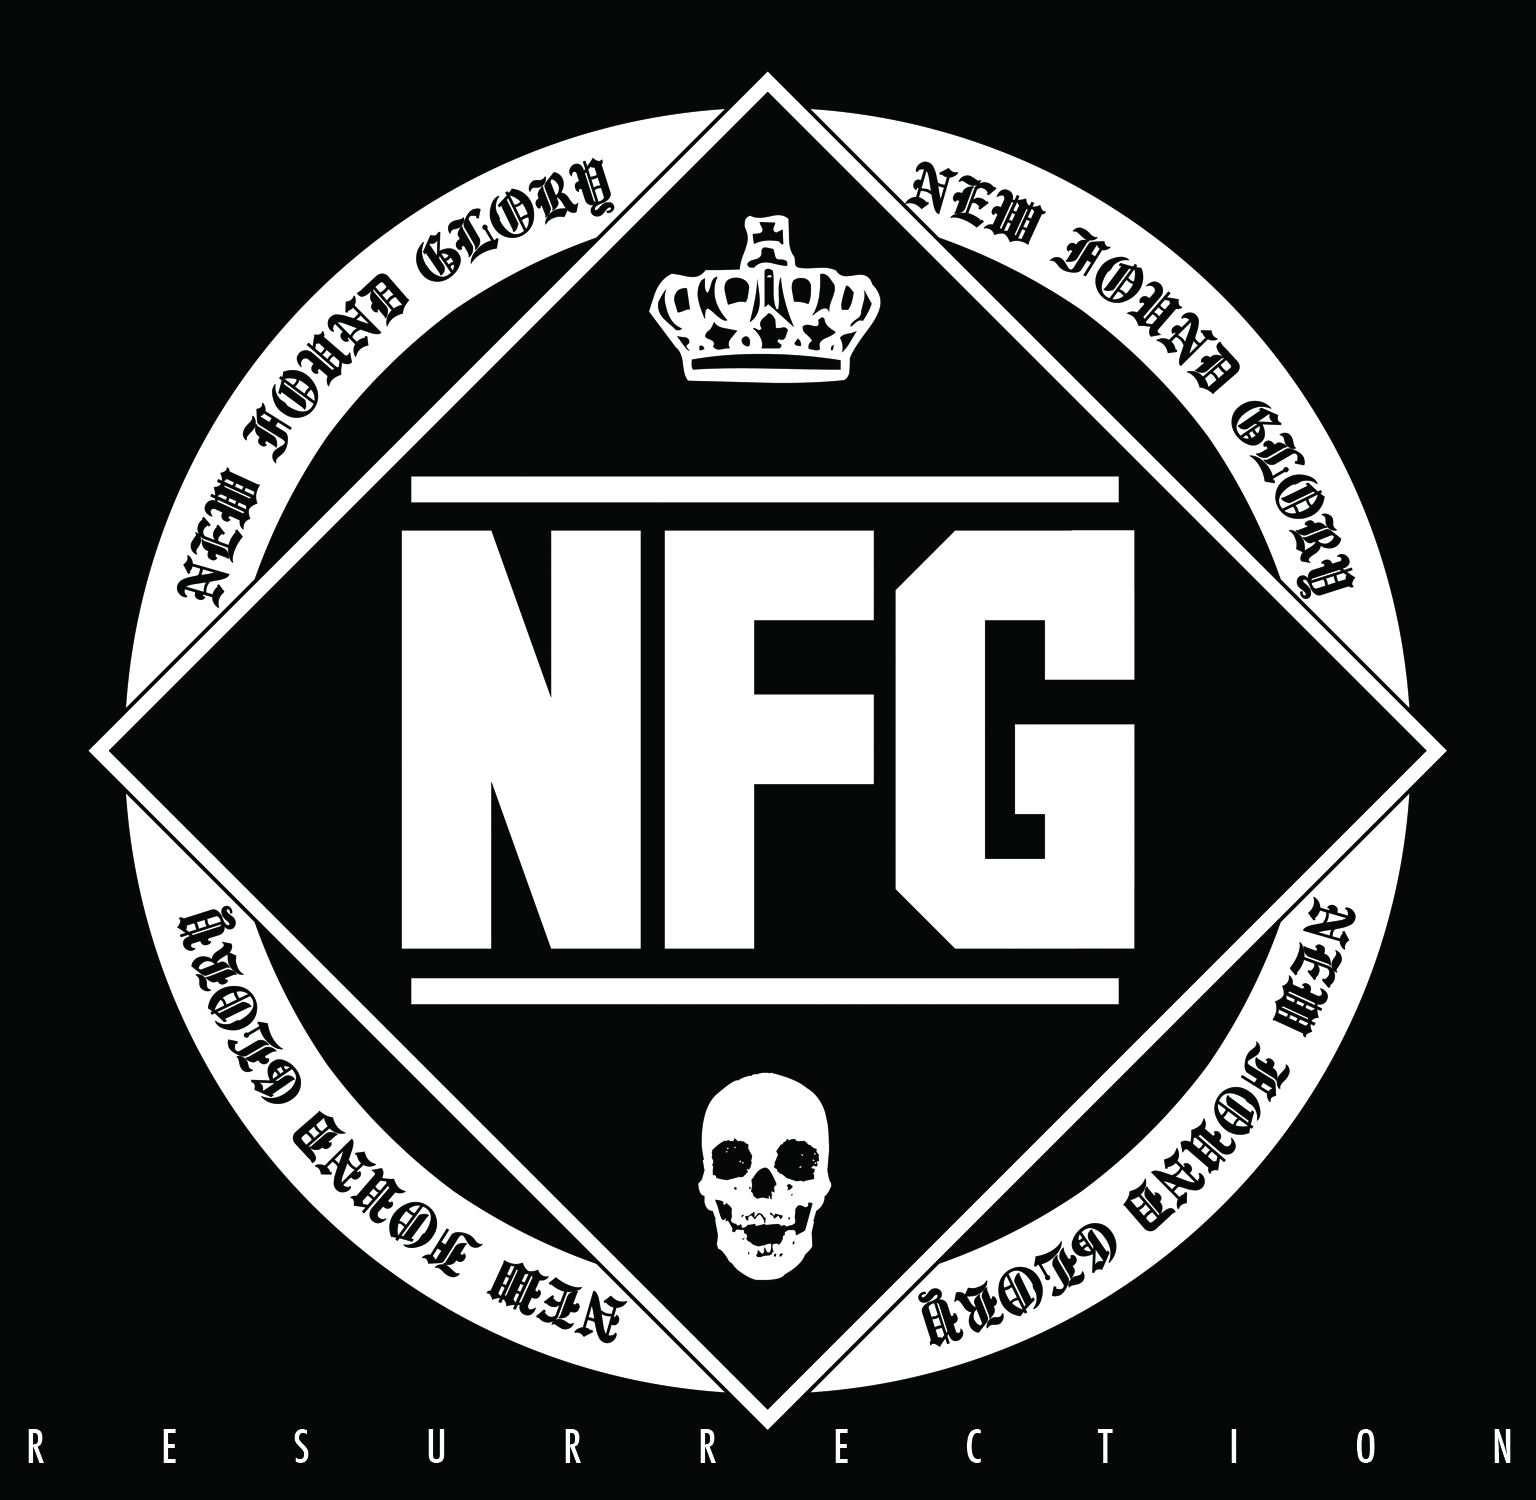 Le novità dei New Found Glory!